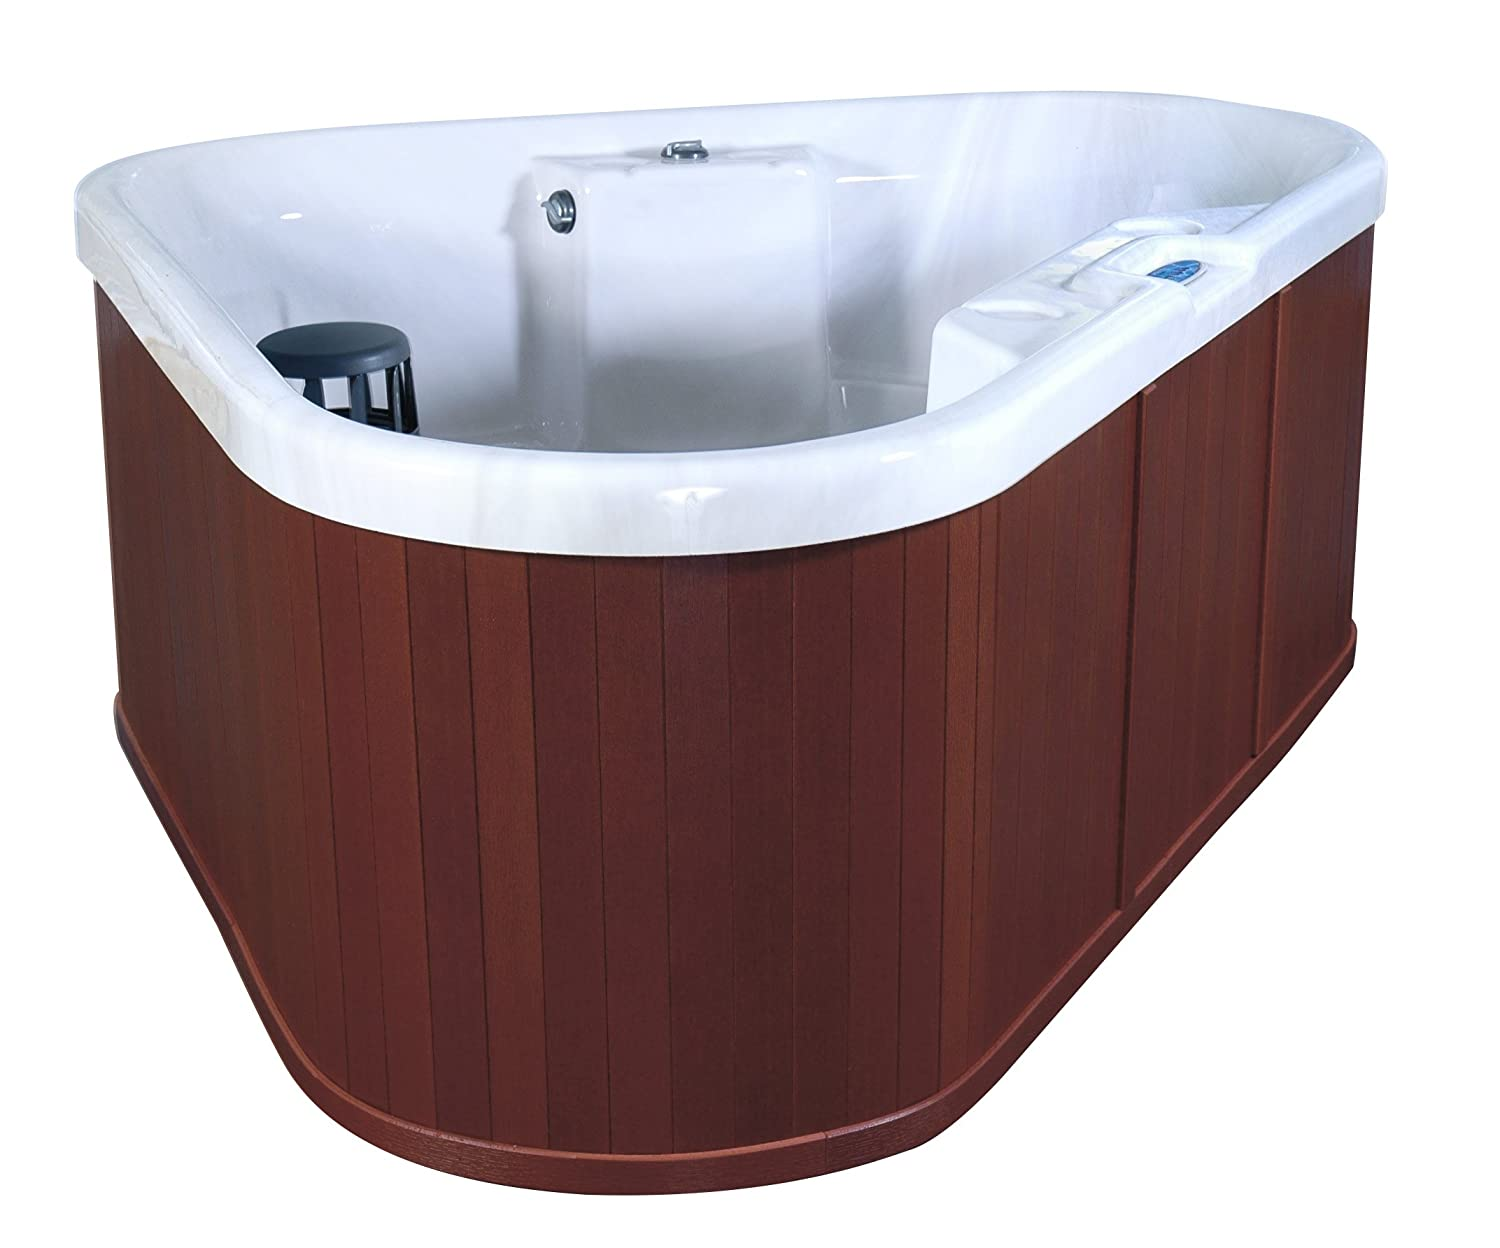 Amazon.com: QCA Spas Model 10 Aquarius Hot Tub, 88 by 72 by 72 by 30 ...